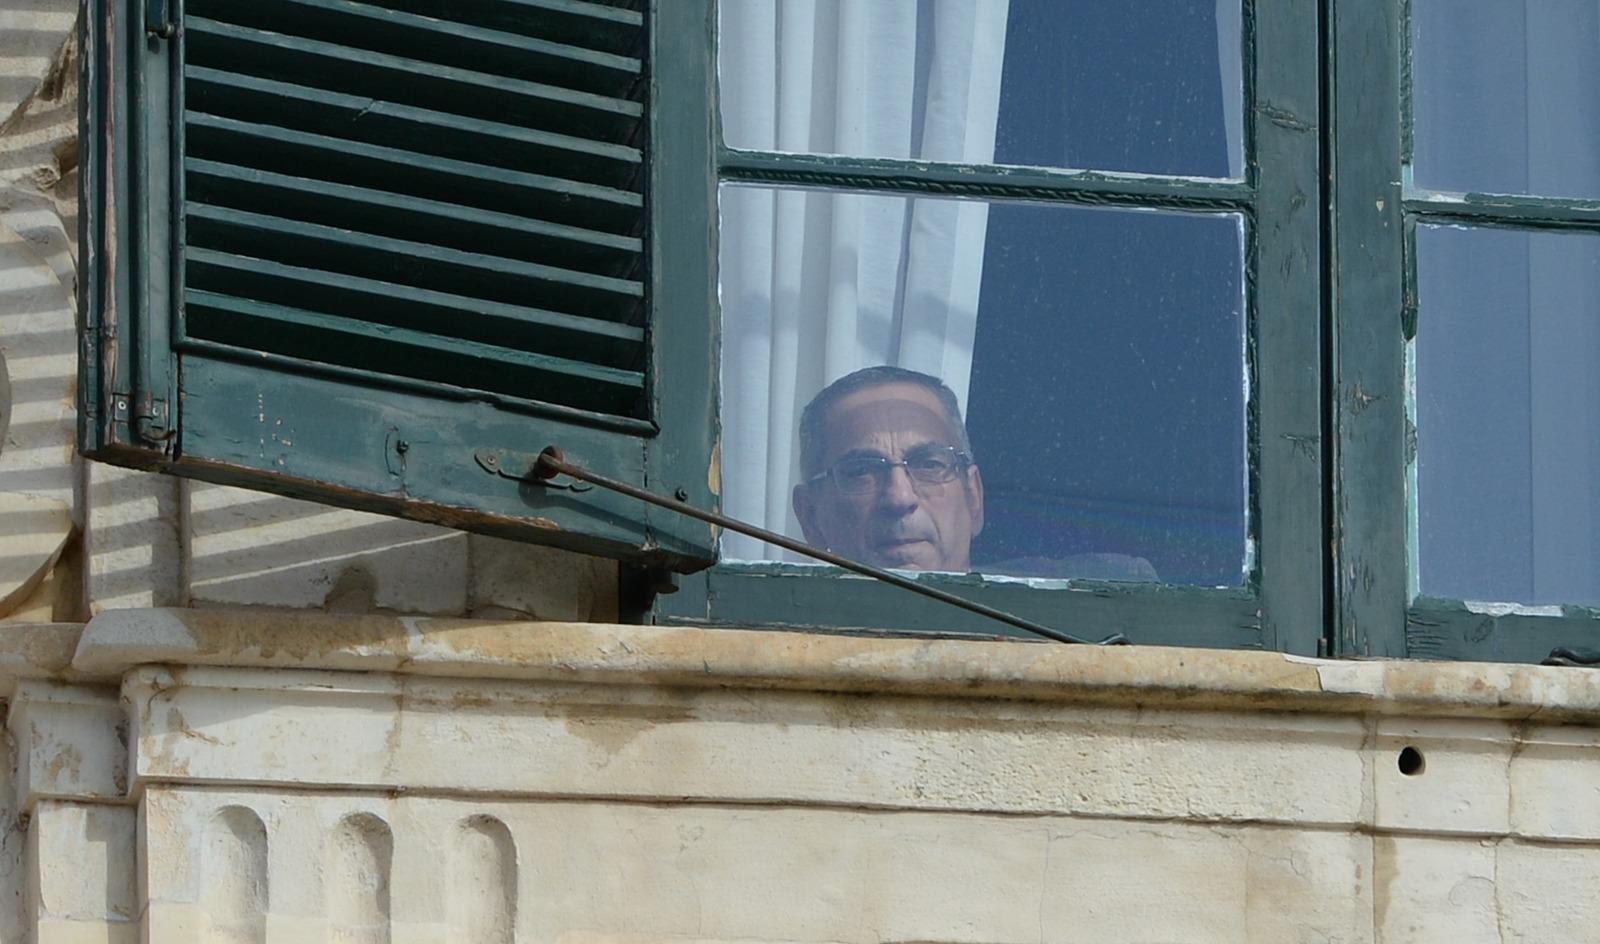 Minister Joe Mizzi looks on from the Cabinet room onto the movements in Castille Square. Photo: Matthew Mirabelli